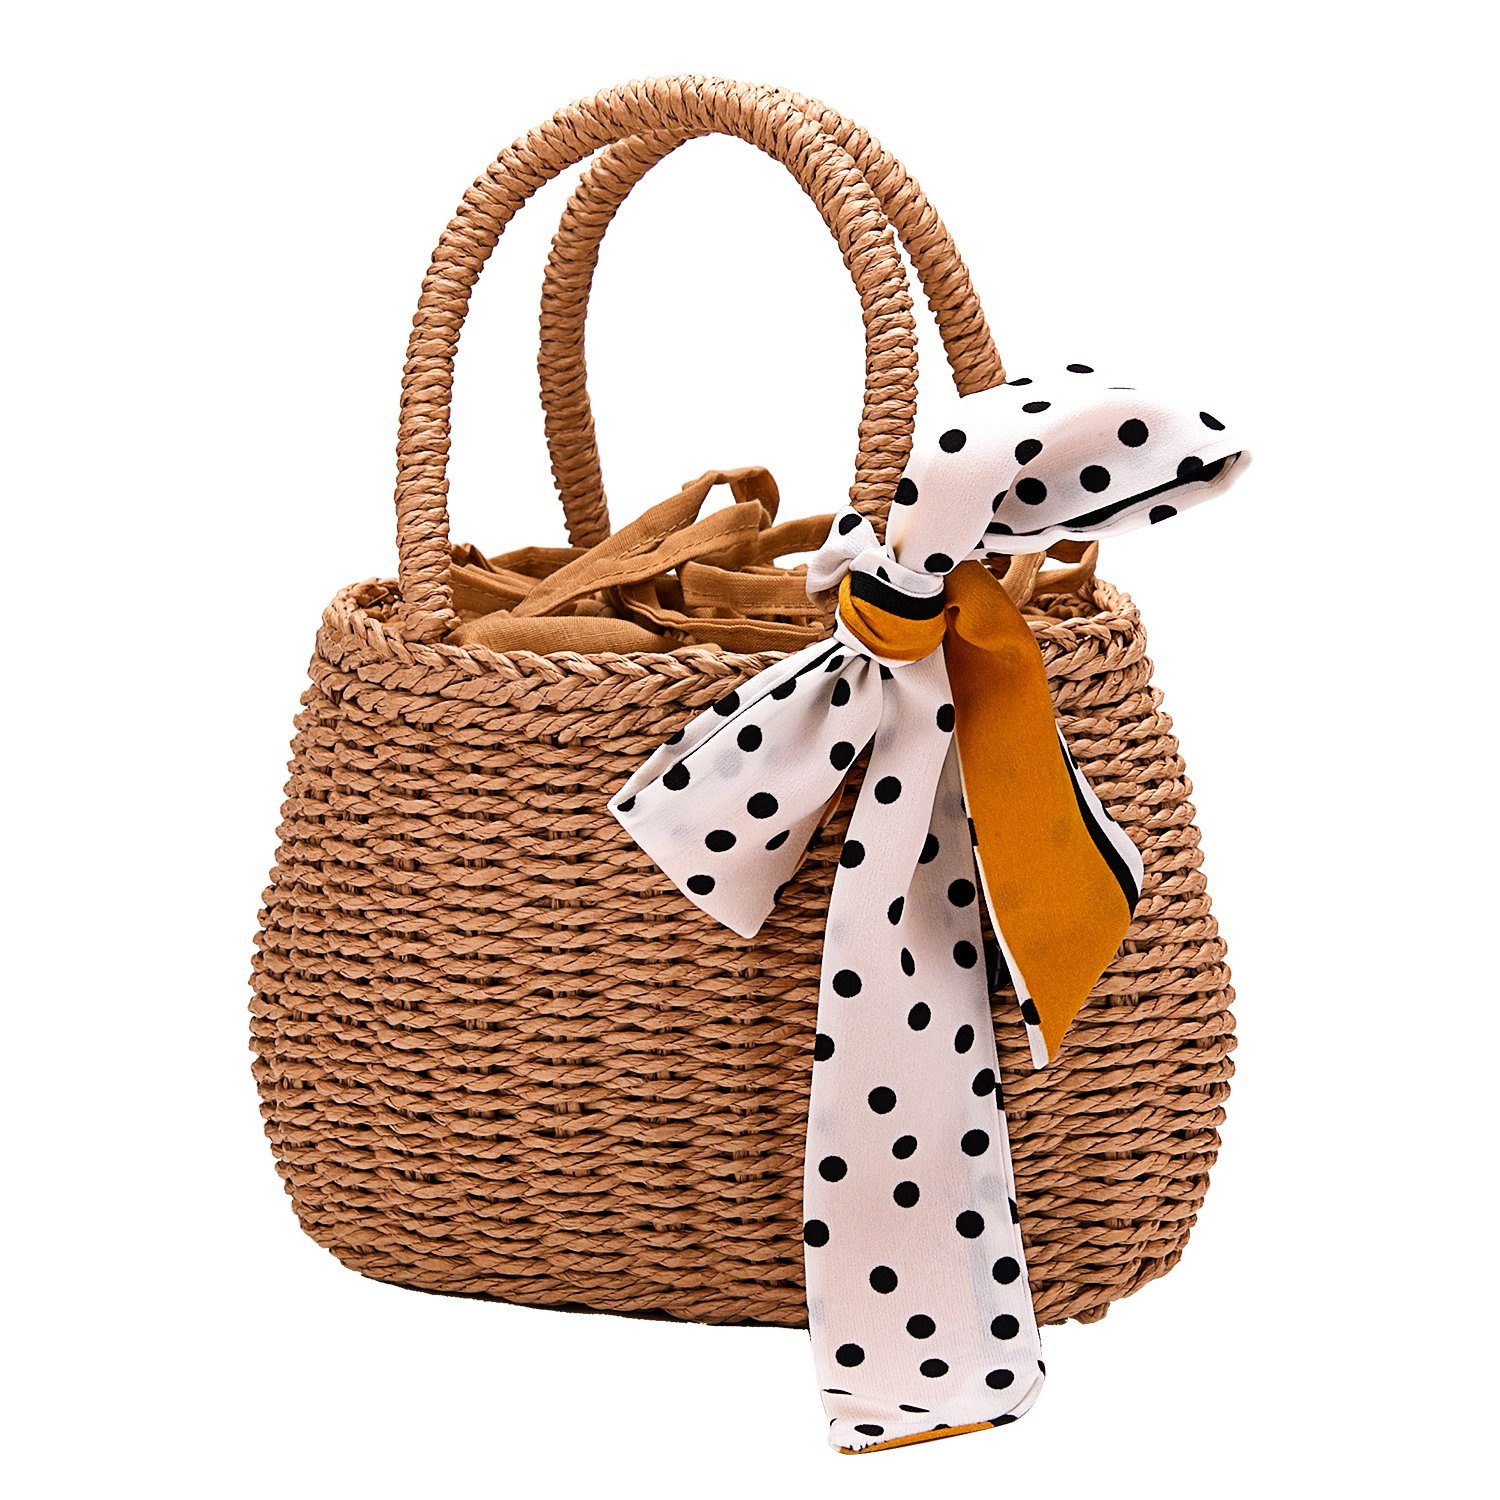 Handwoven Bag Straw Woven Handbag Tote Natural Top-Handle Bags With Scarves For Women Girls (straw bag)